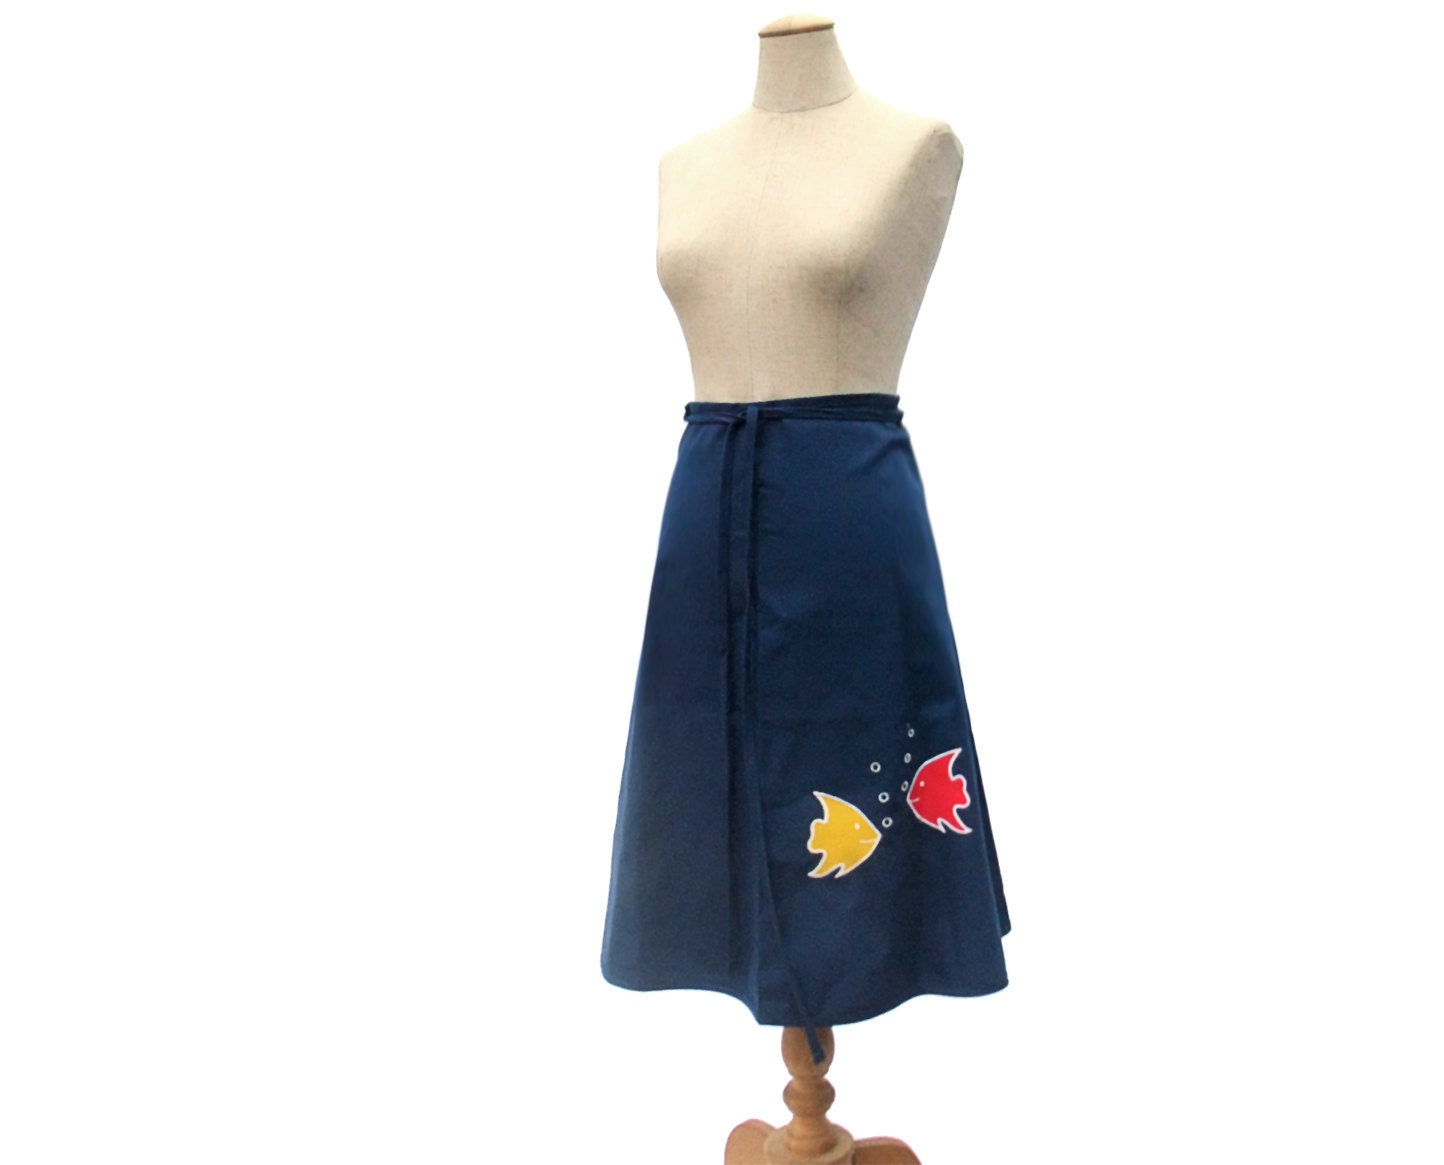 Vintage 1970s Wrap Skirt Fish Applique Navy by mysweetiepiepie from etsy.com